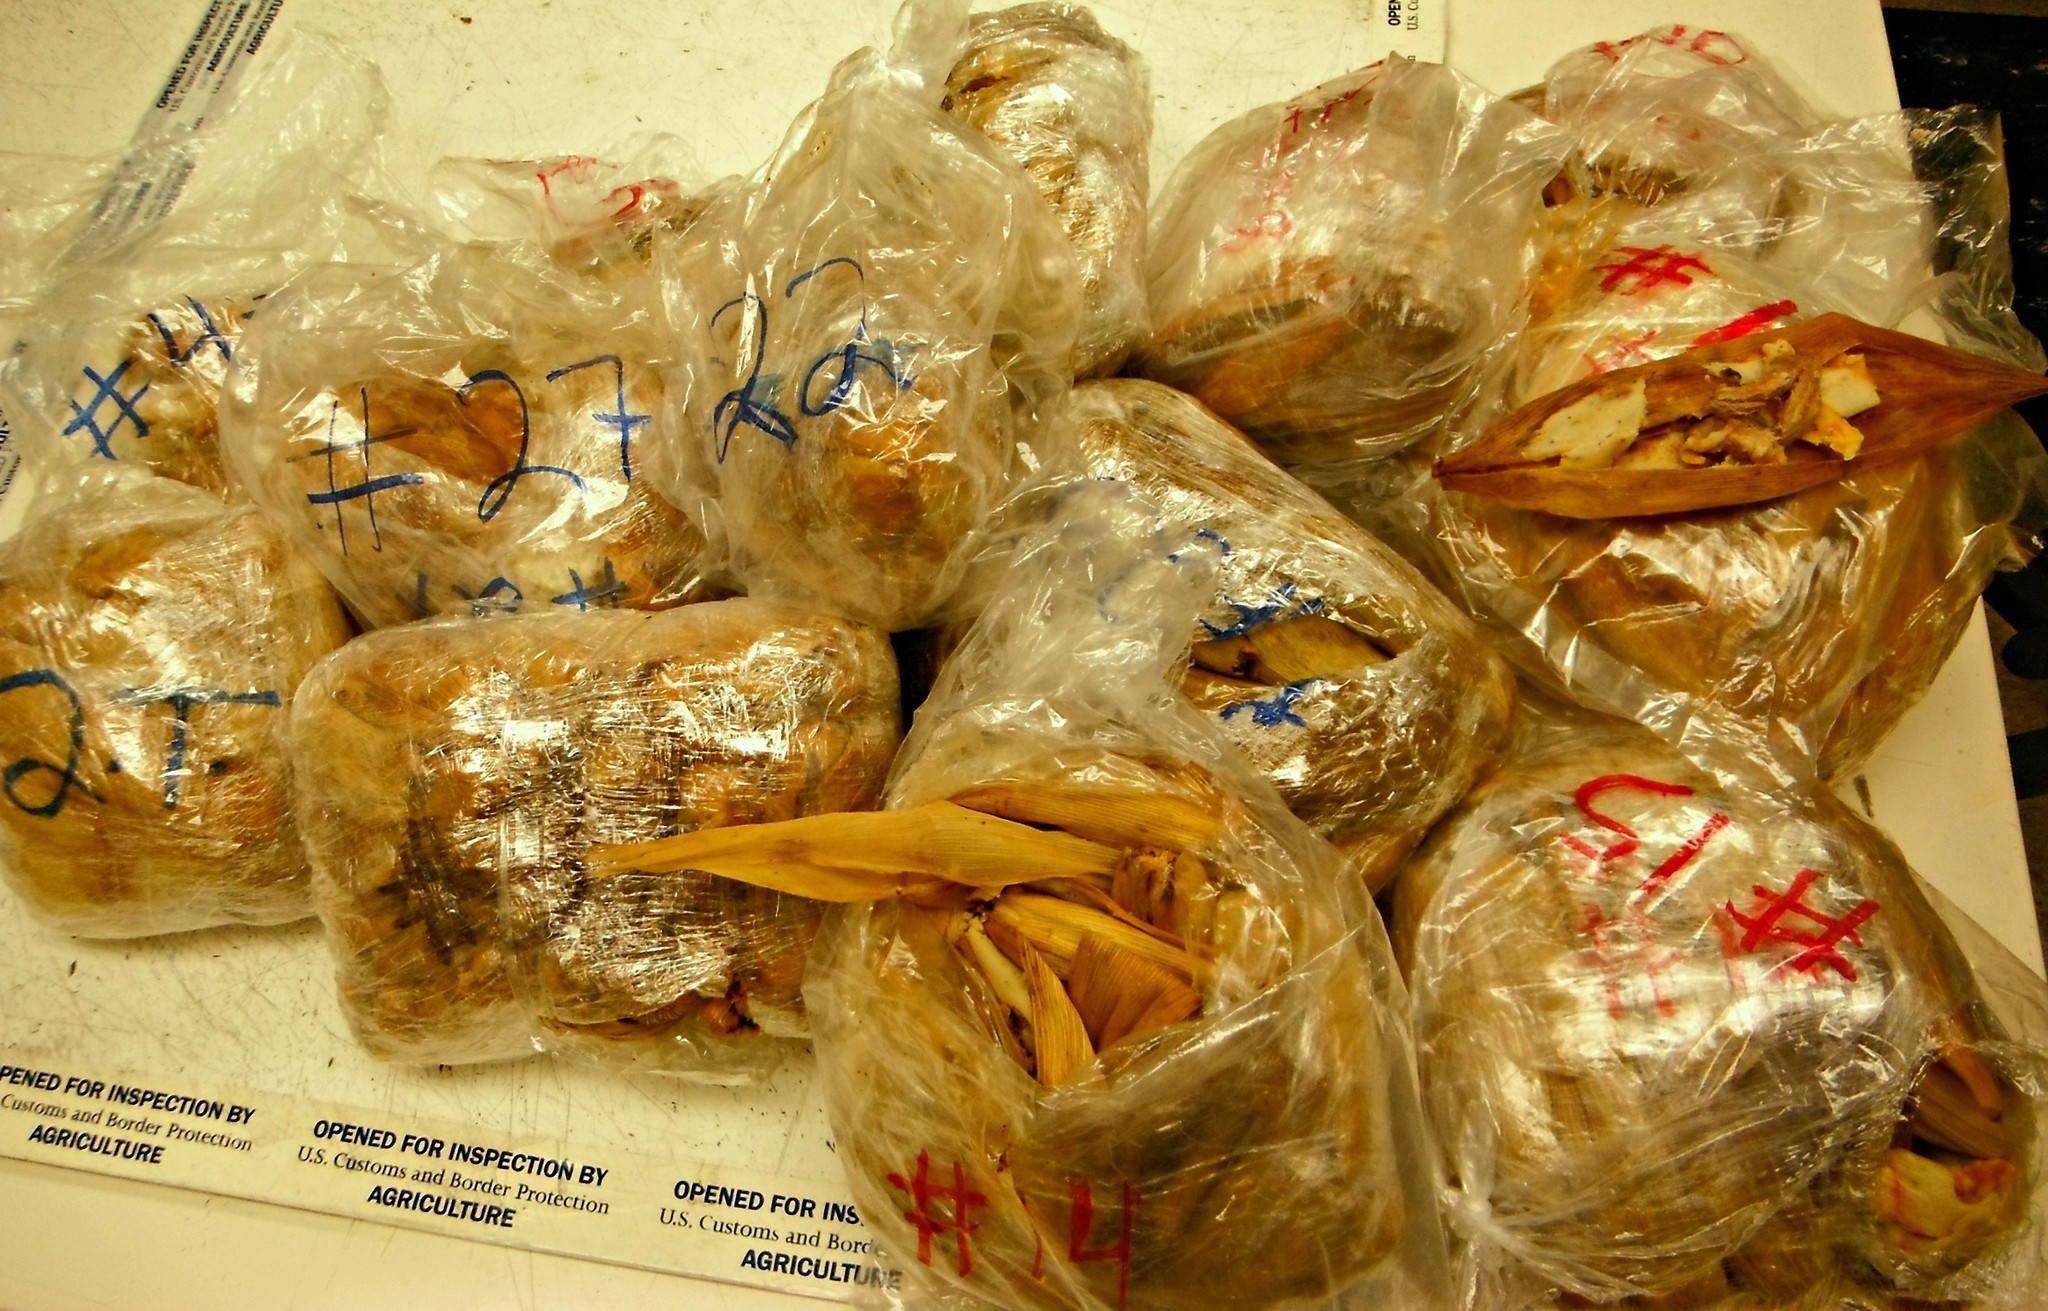 Pork Tamales that were seized by customas officials at LAX